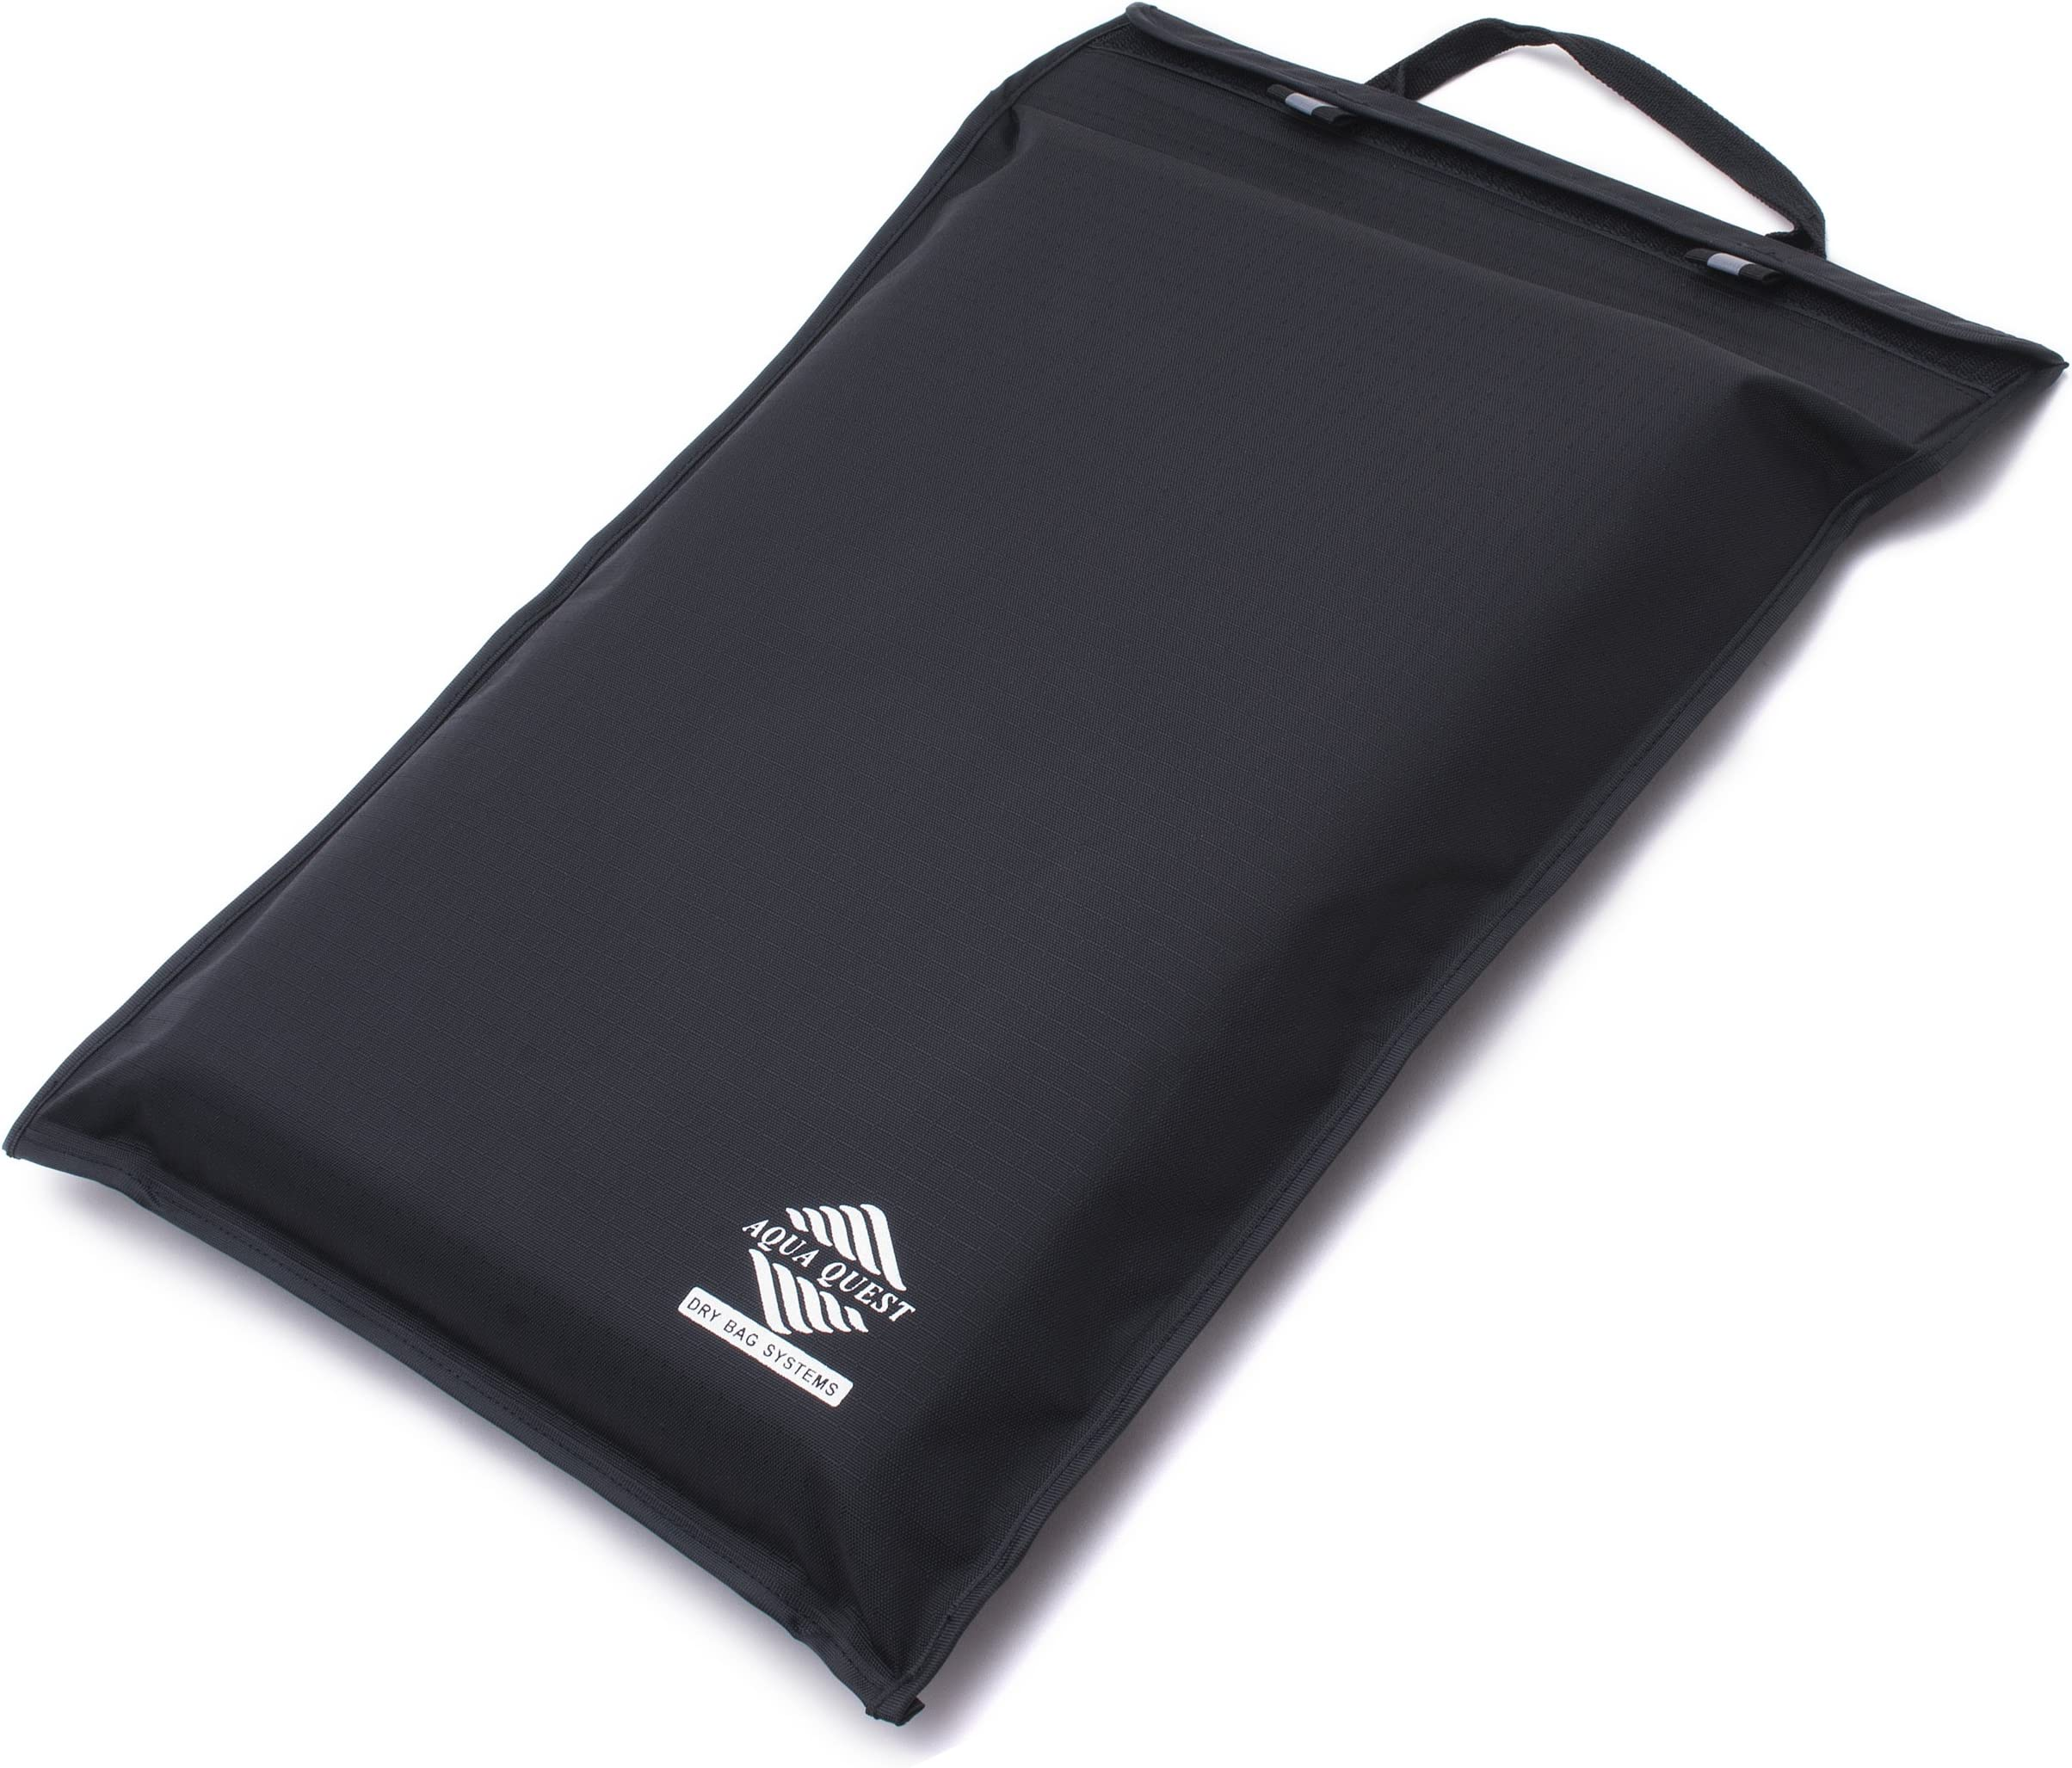 Aqua Quest Storm 13 - 100% Waterproof Laptop Case – 13 inch, Lightweight, Durable, Fast & Easy to Use, Versatile - Black, Dry Bag Computer Sleeve